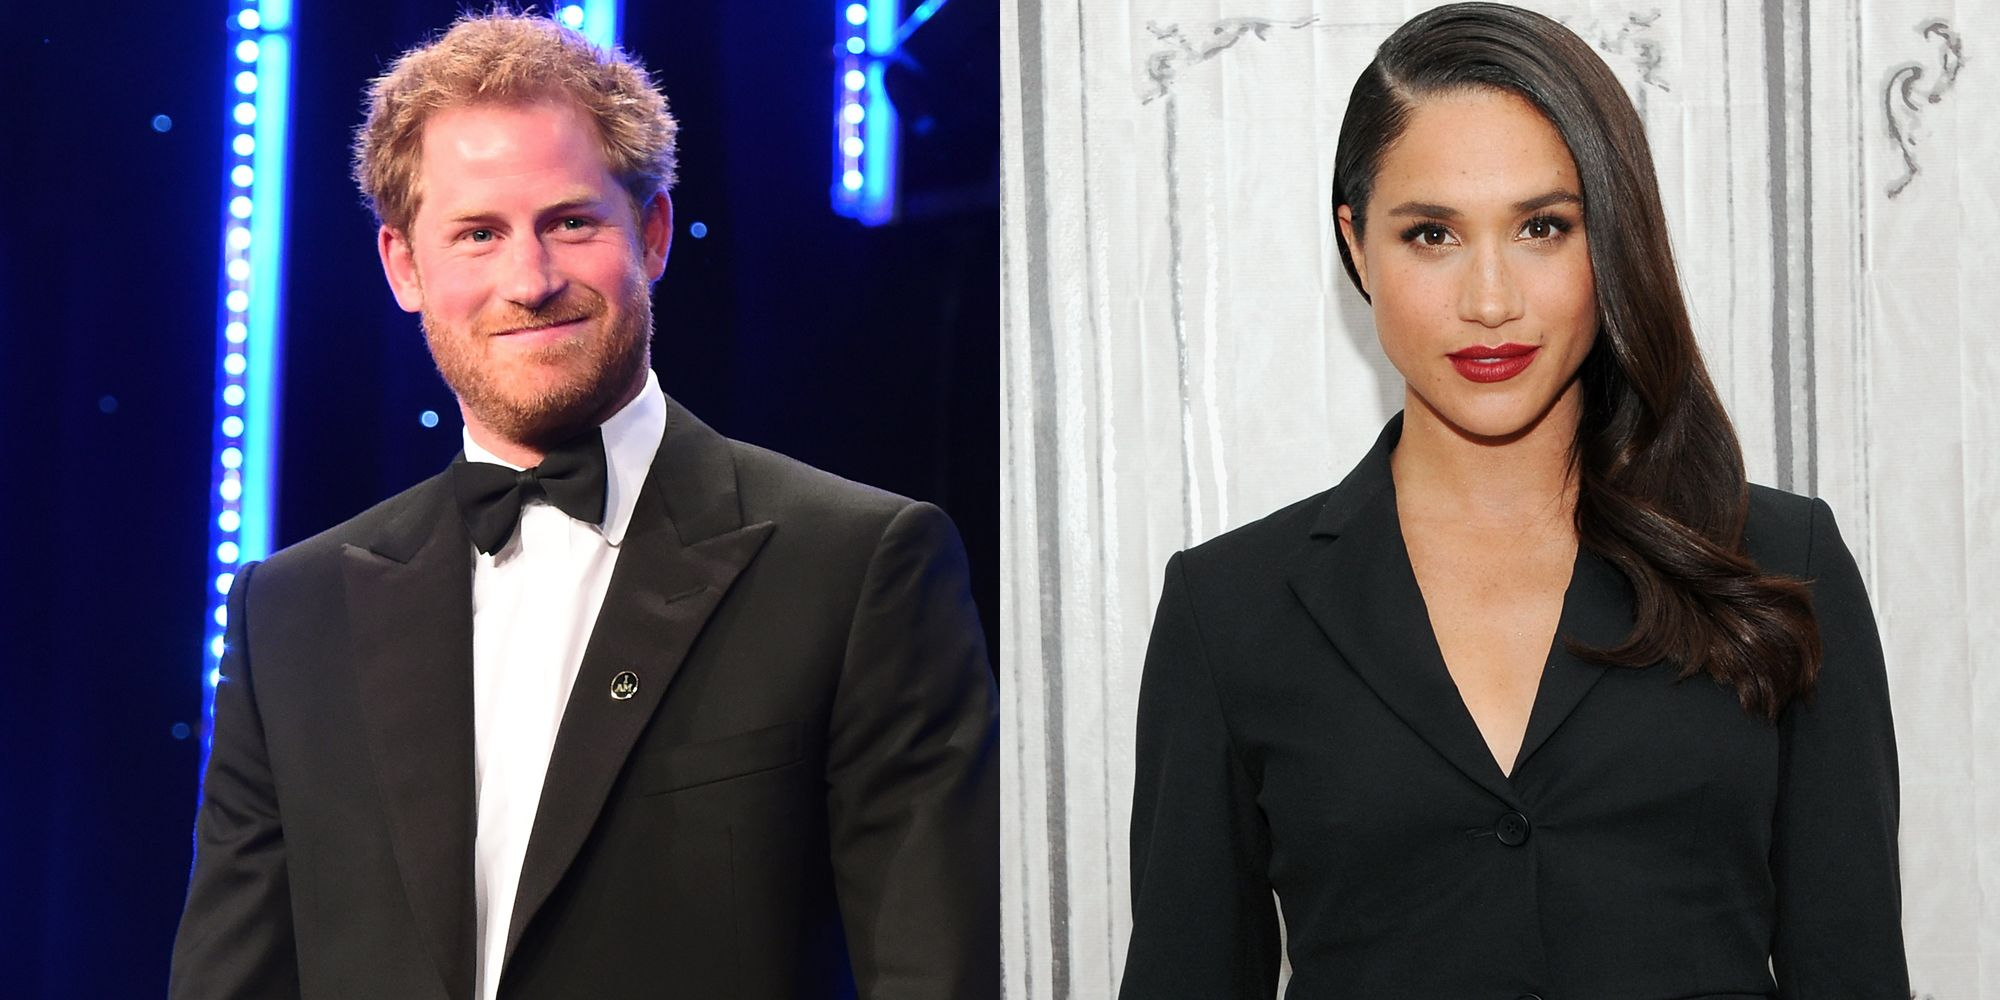 The Queens Representative Says Prince Harry and Meghan Markles Relationship Is Marvelous